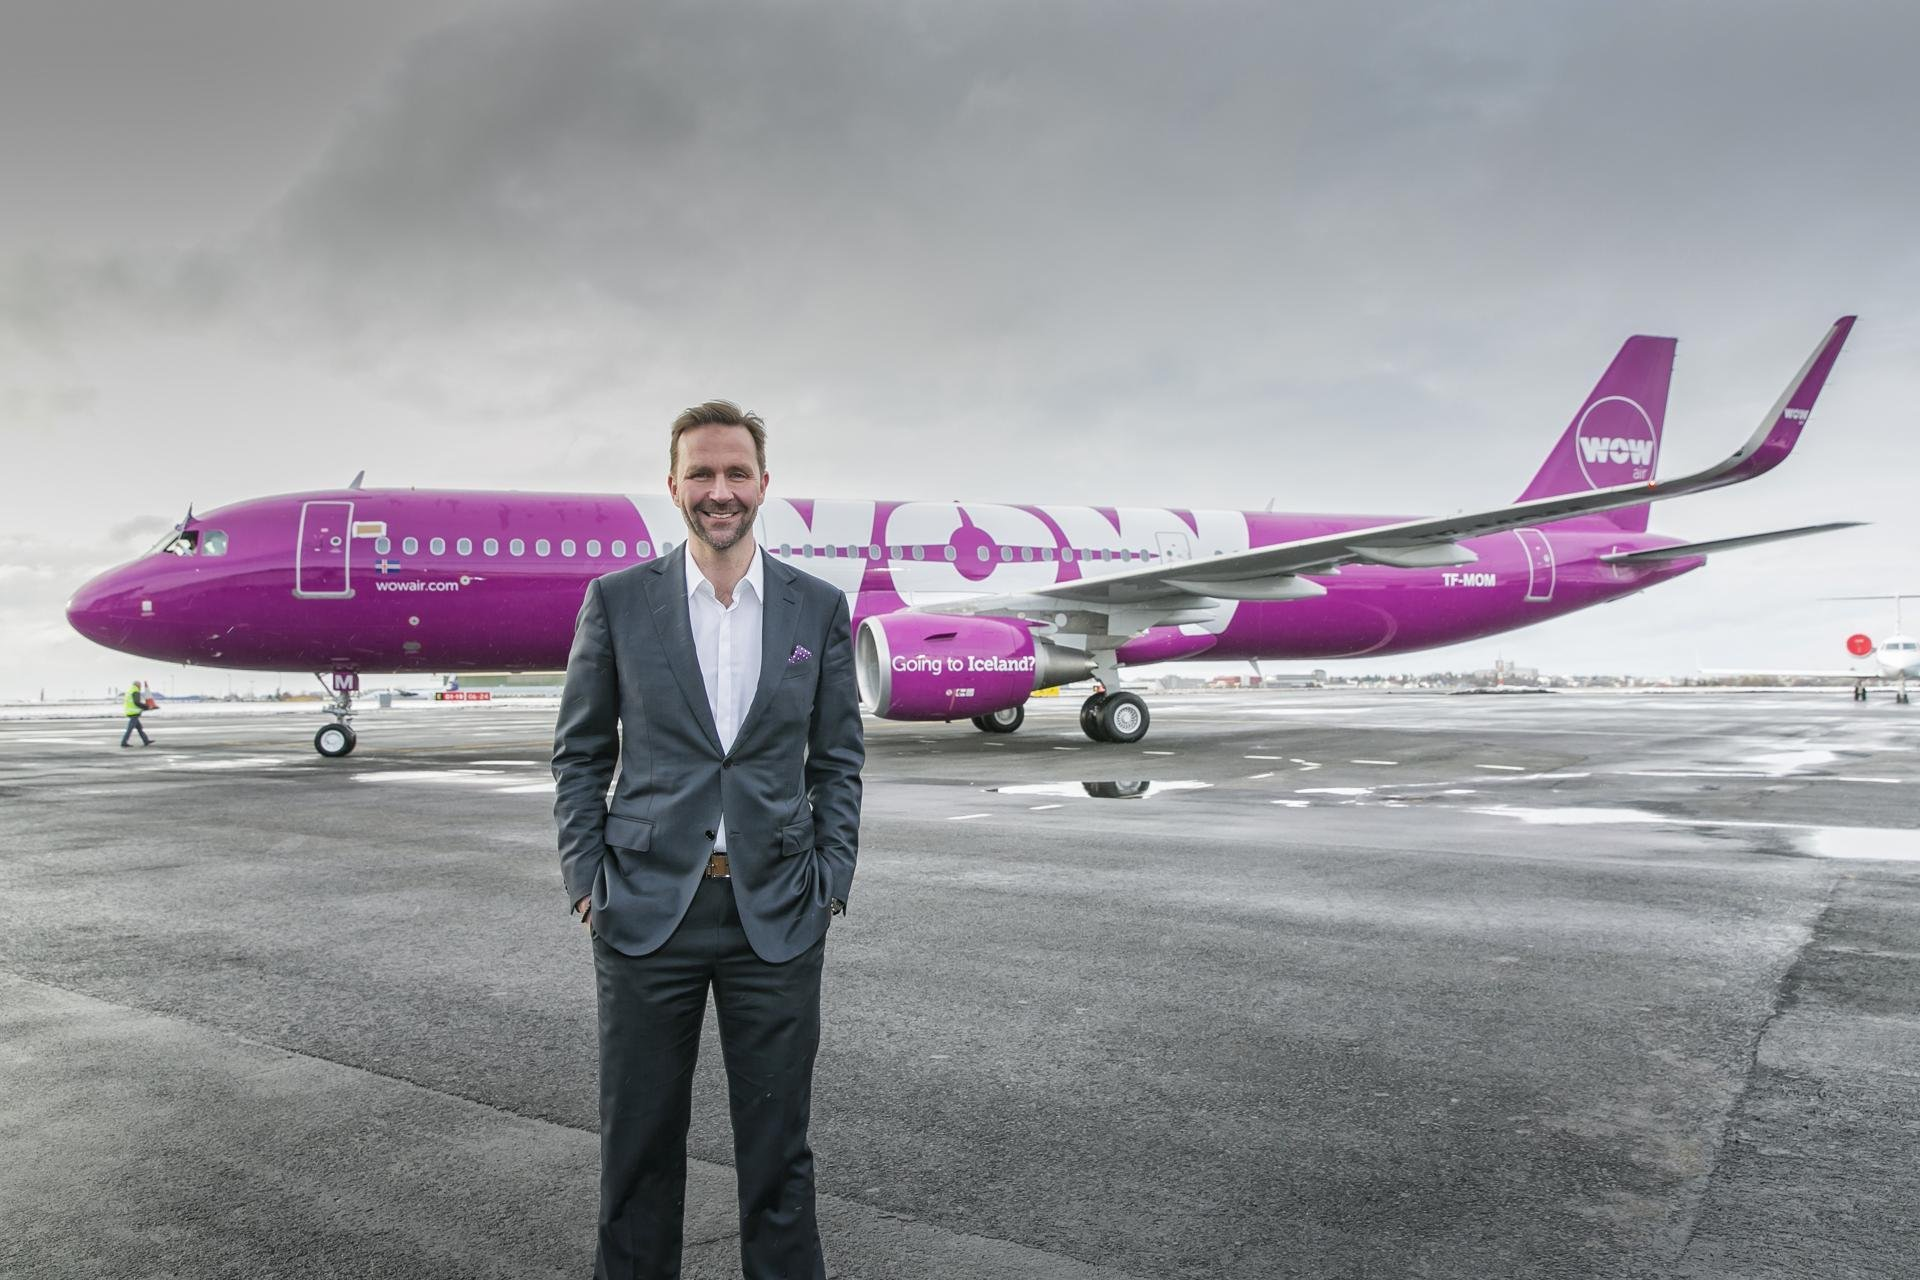 Skuli Mogensen, WOW airlines Founder and CEO / Image courtesy of WOW airlines // Published: 1.10.18